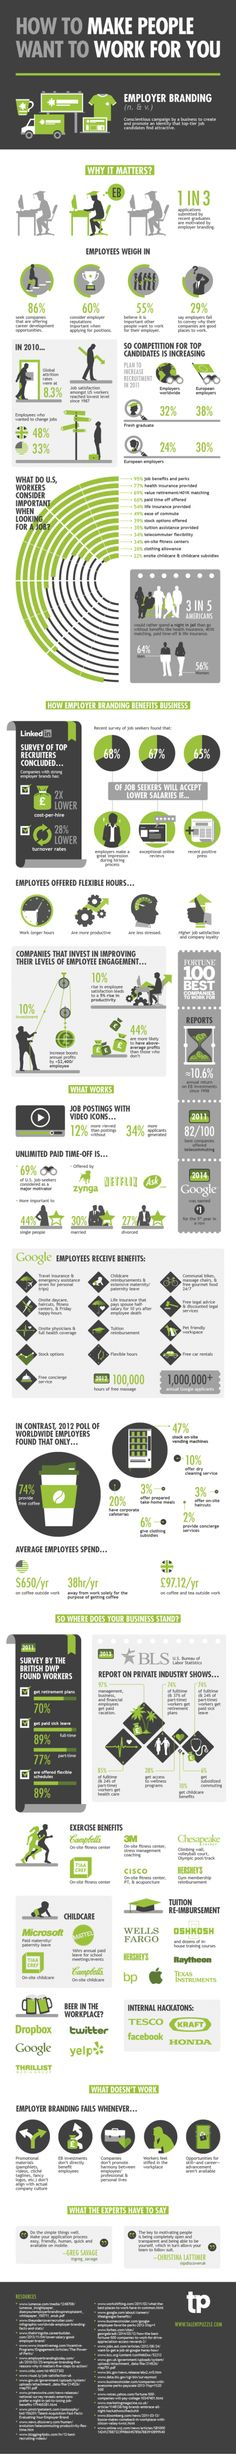 leuke infographic met data #employer branding TalentPuzzle-MakePeopleWorkForYou_600px-Temp-1